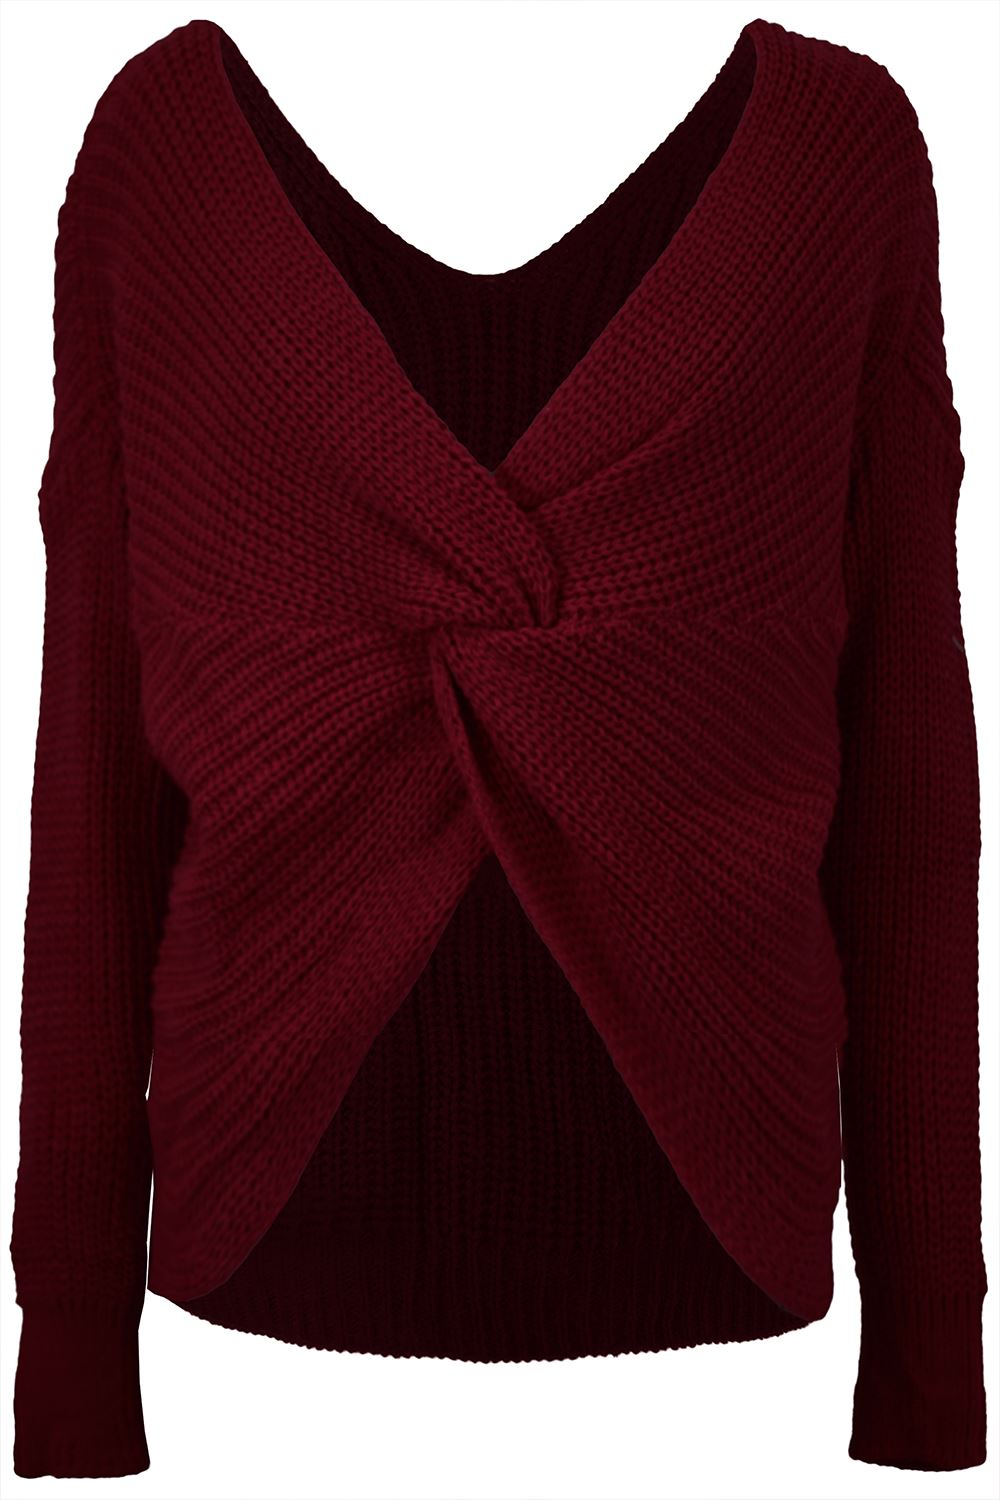 Womens-Ladies-Twisted-Knot-Front-Slouch-Fit-Bubble-Sleeve-Baggy-Oversized-Jumper thumbnail 15